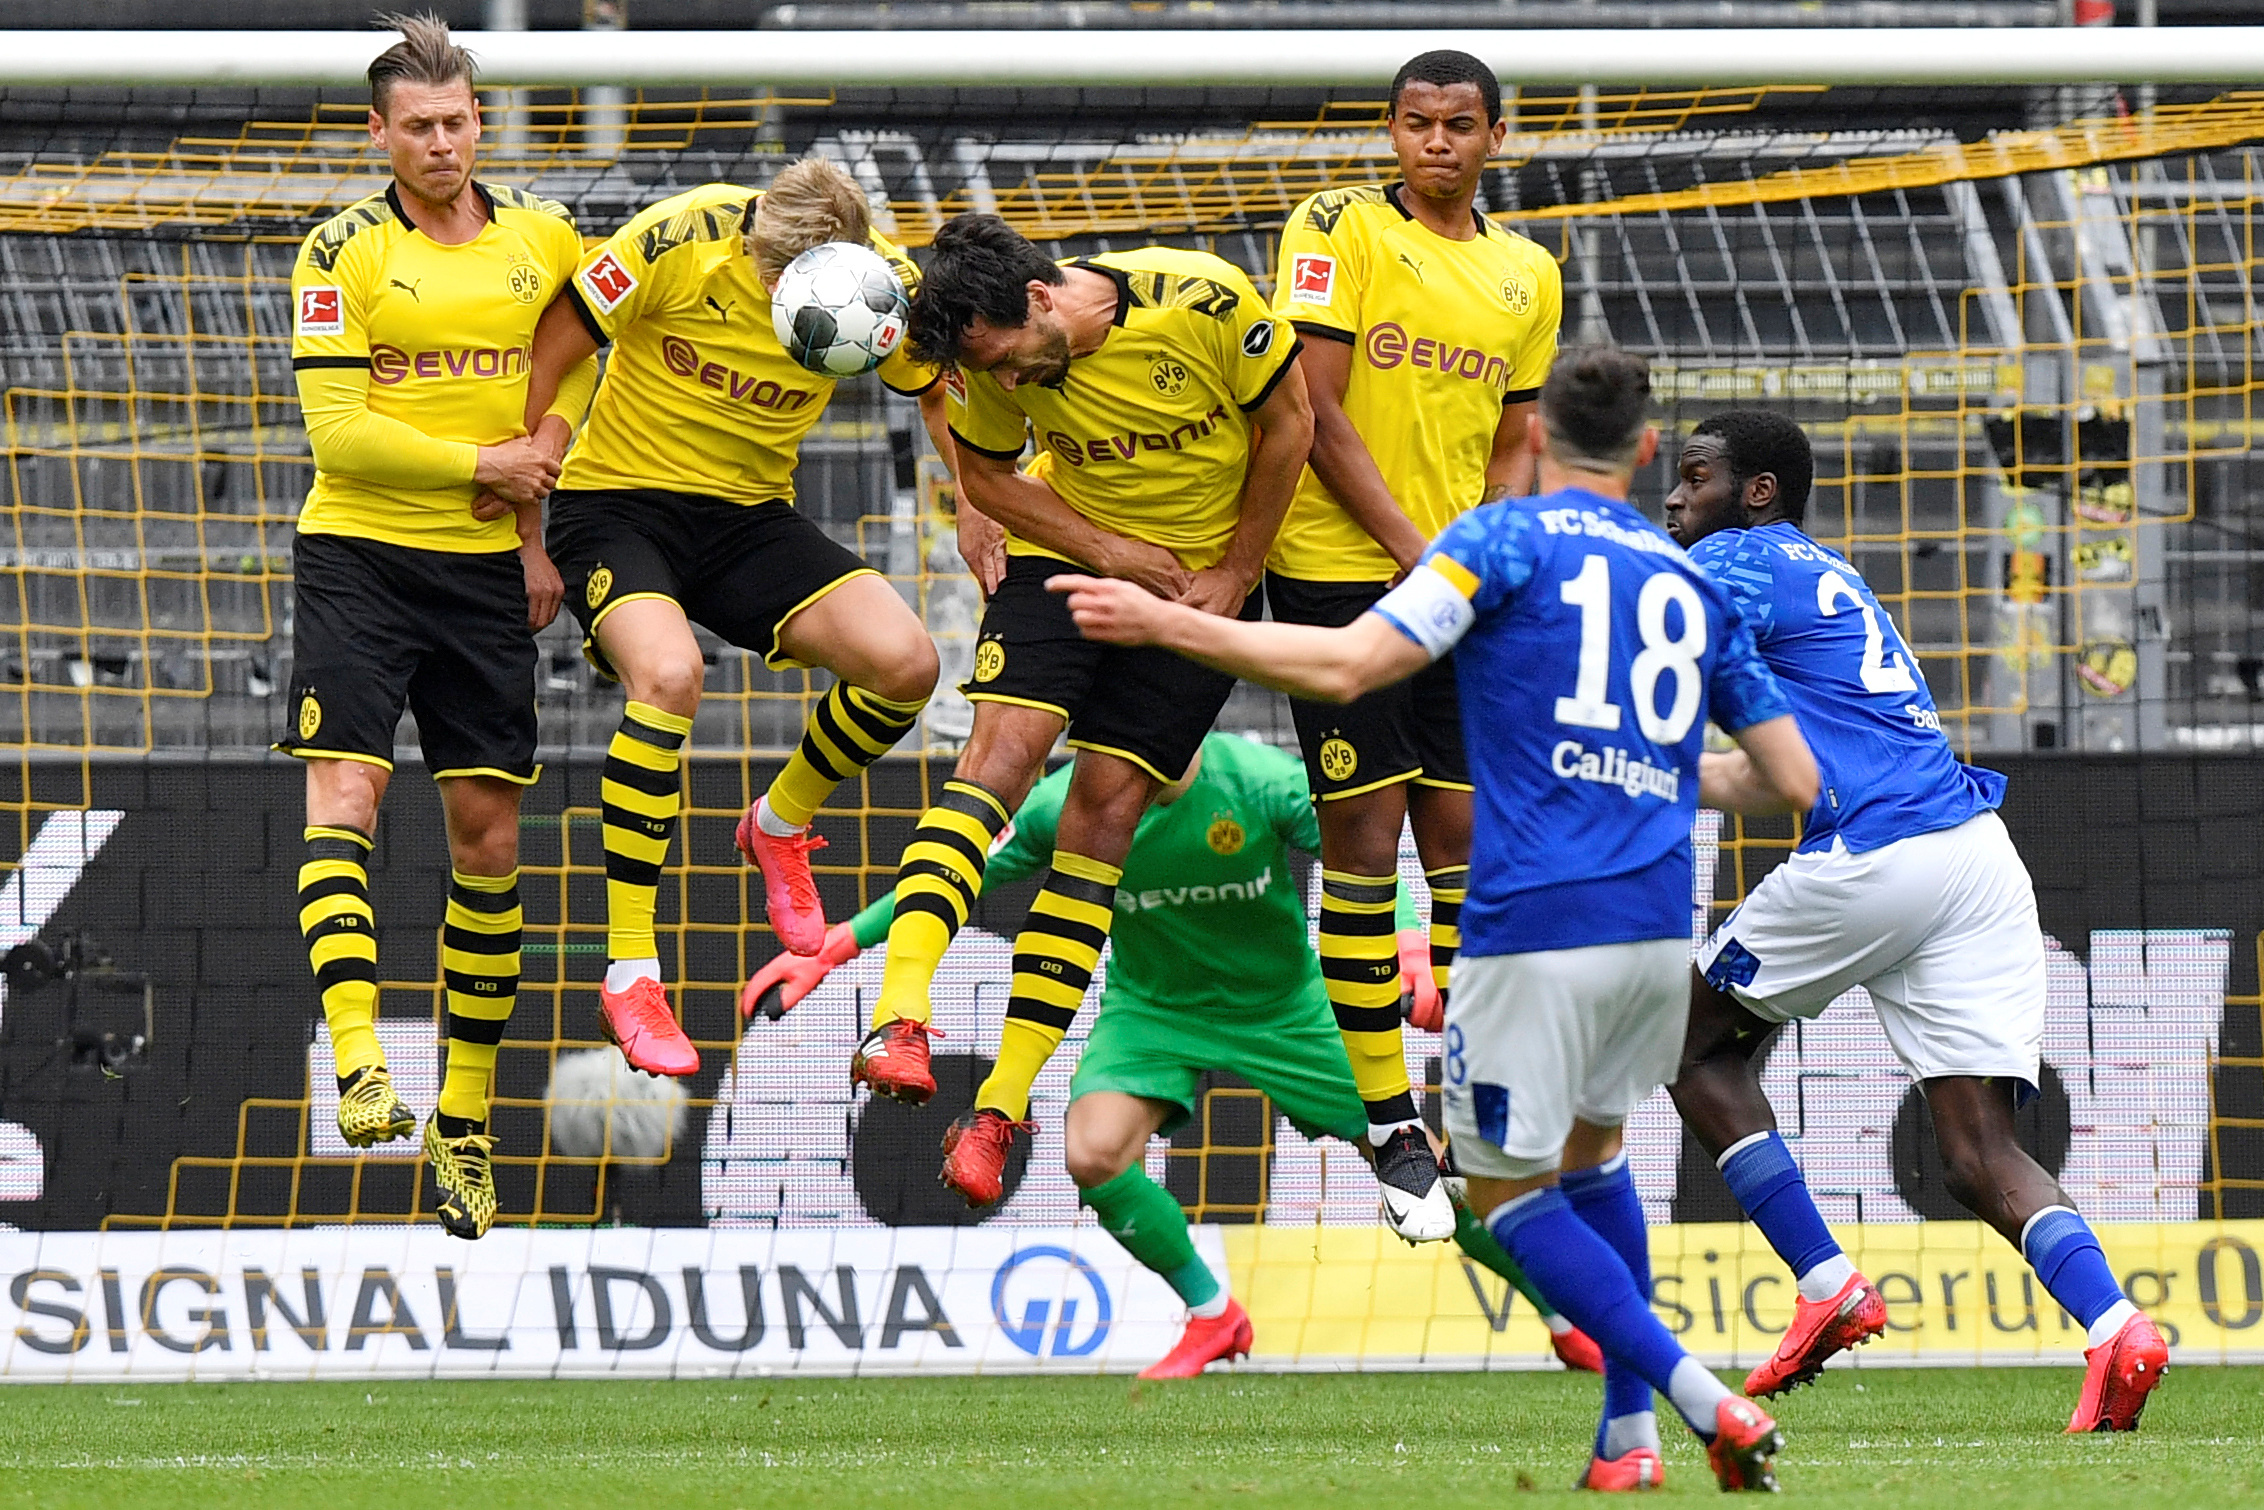 Borussia Dortmund's barrier avoids the goal danger (REUTERS)